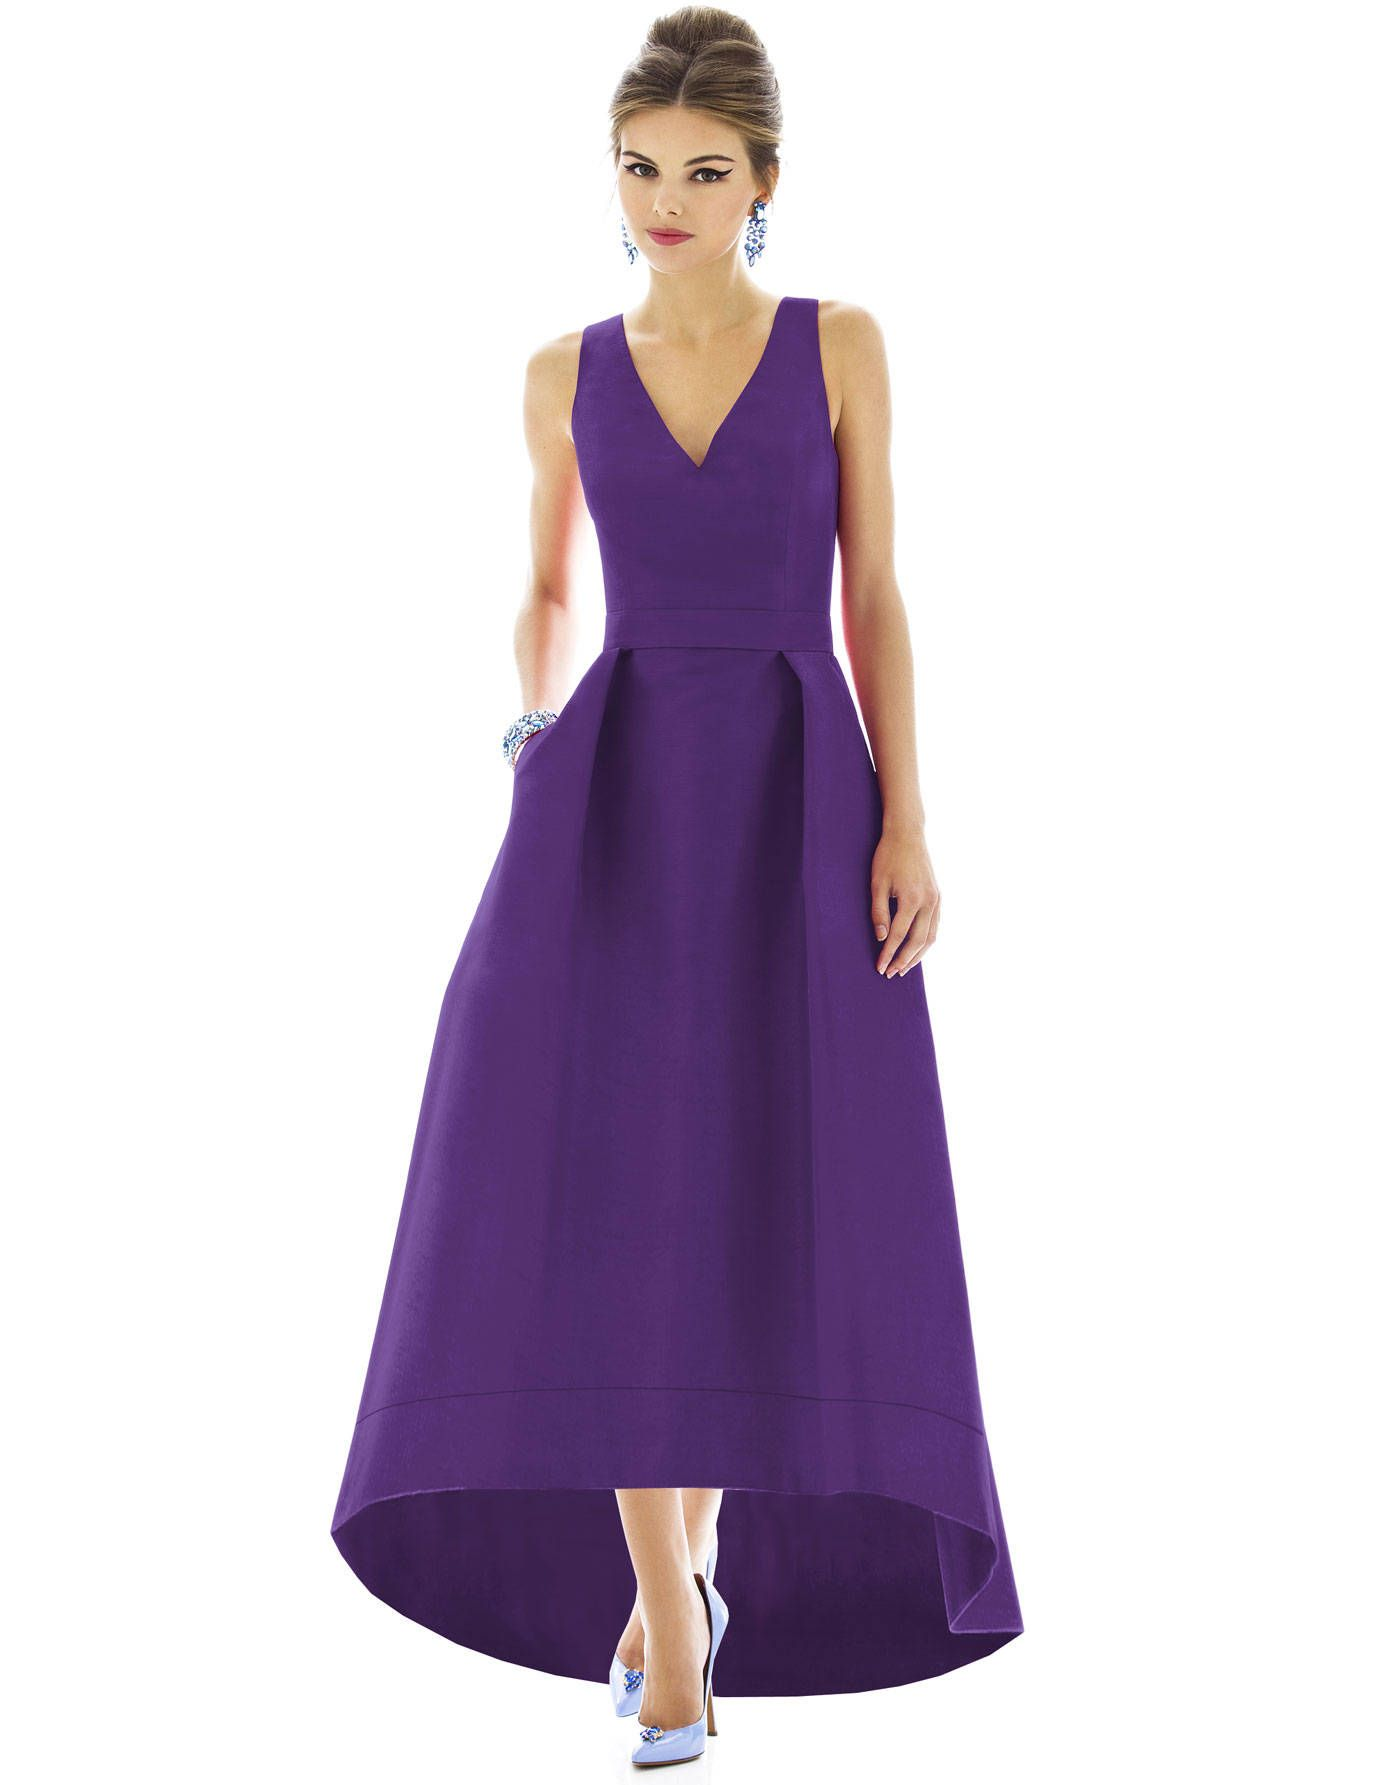 Bridesmaids Dresses 2013 – Best Dress Styles for a Wedding Party